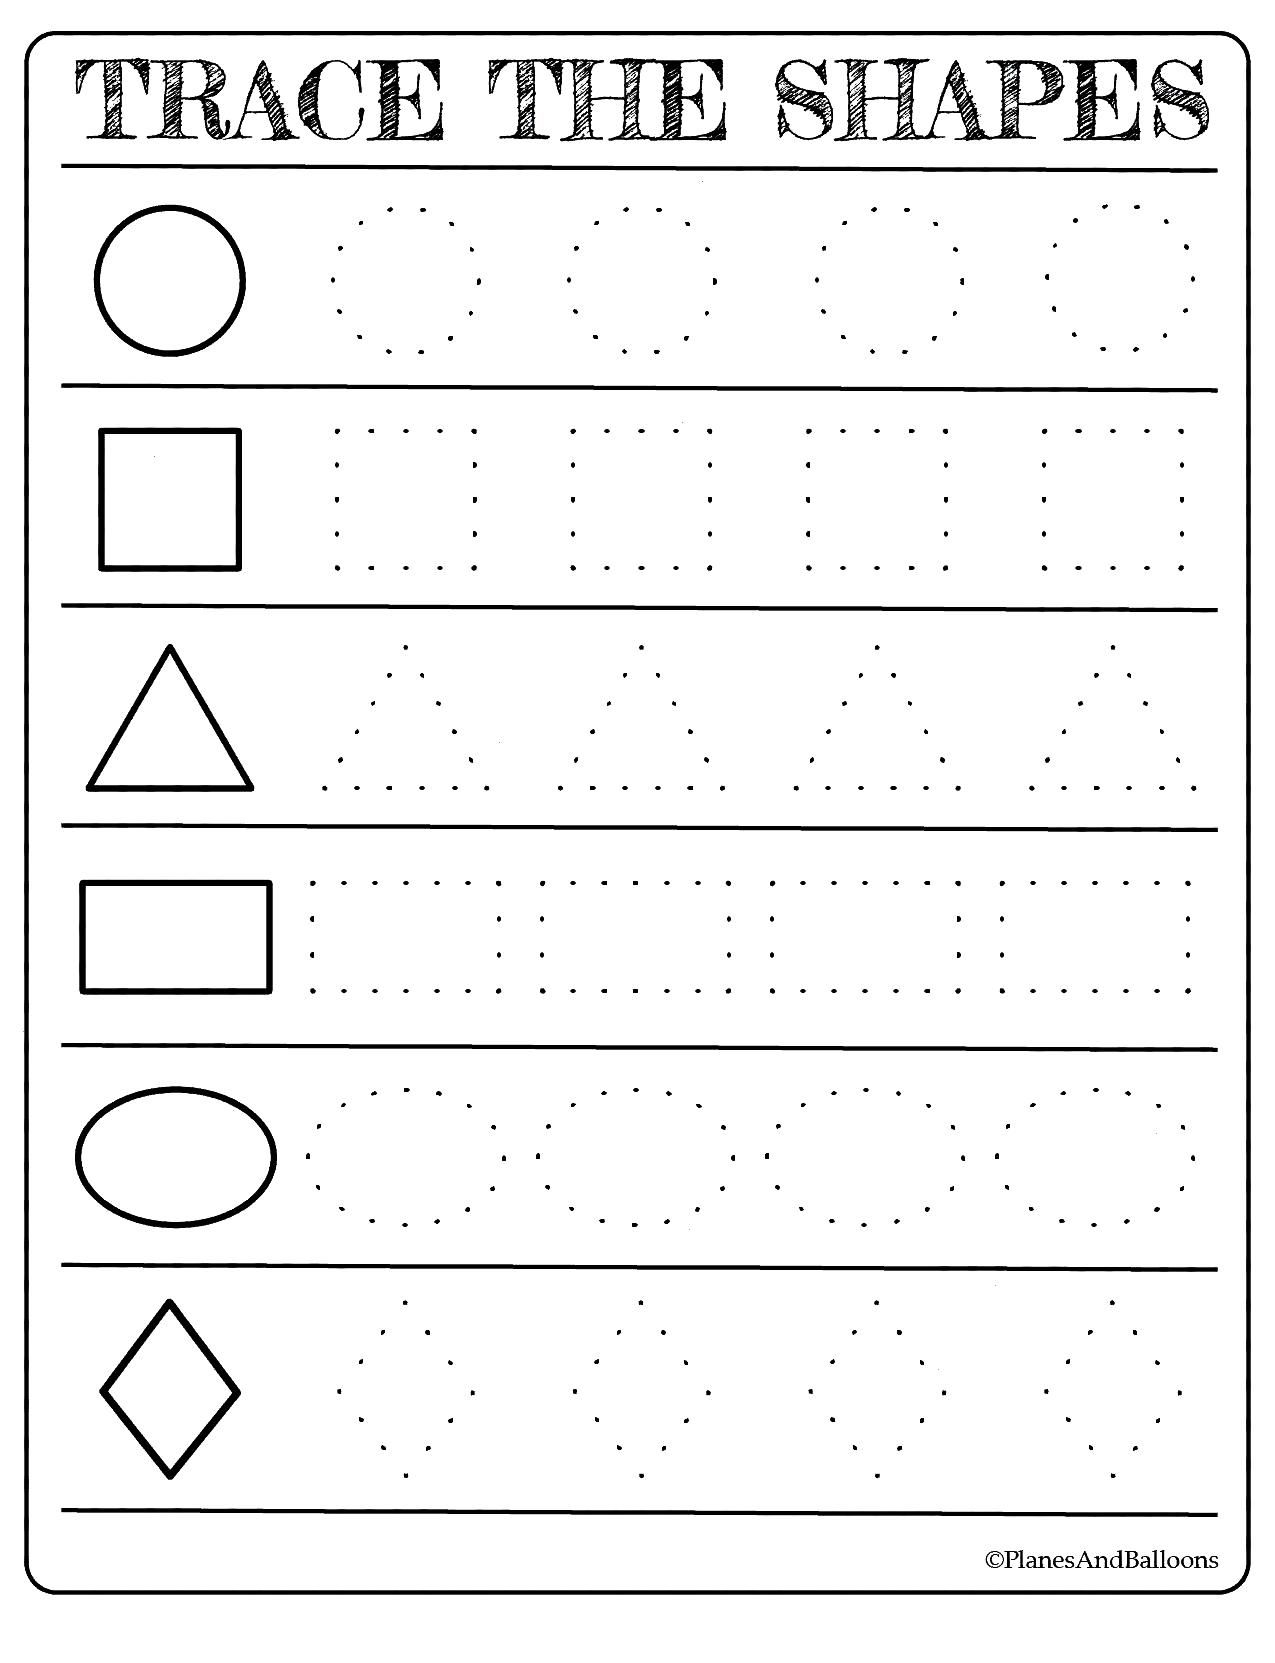 shapes worksheets for toddlers and preschoolers Free printable shapes worksheets for teaching basic